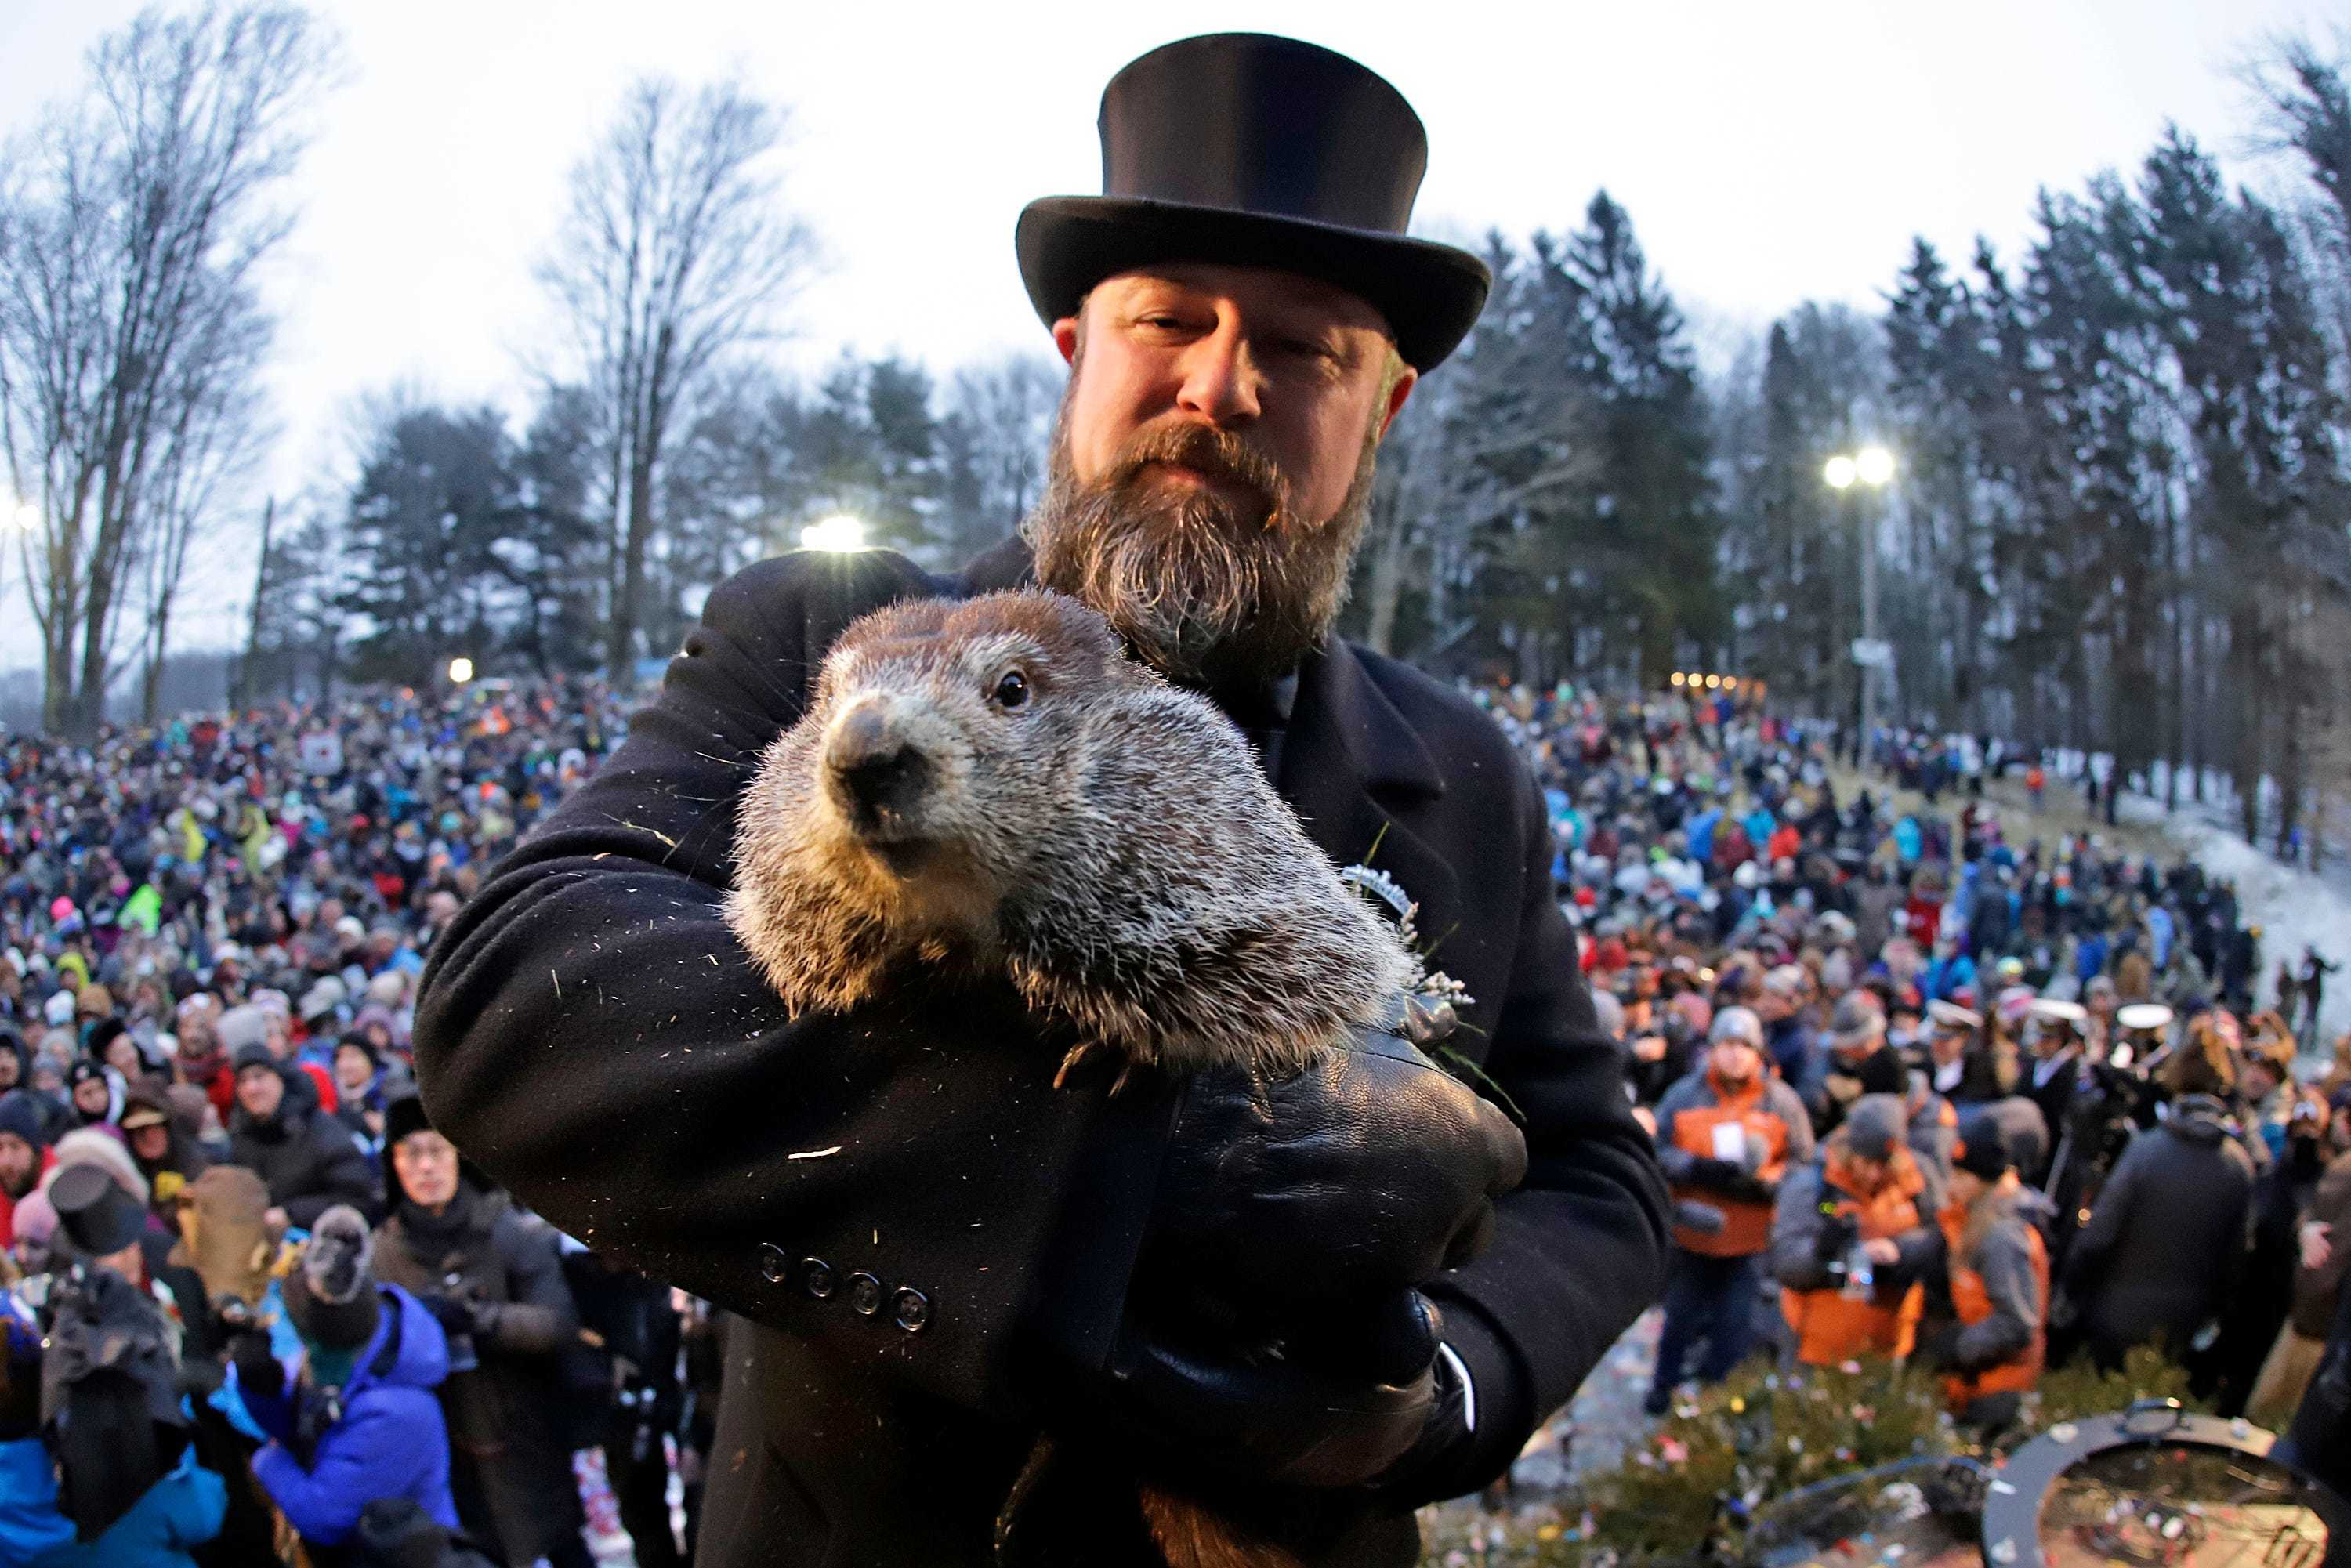 Groundhog Day 2020: No shadow means early spring!  Unless it doesn't